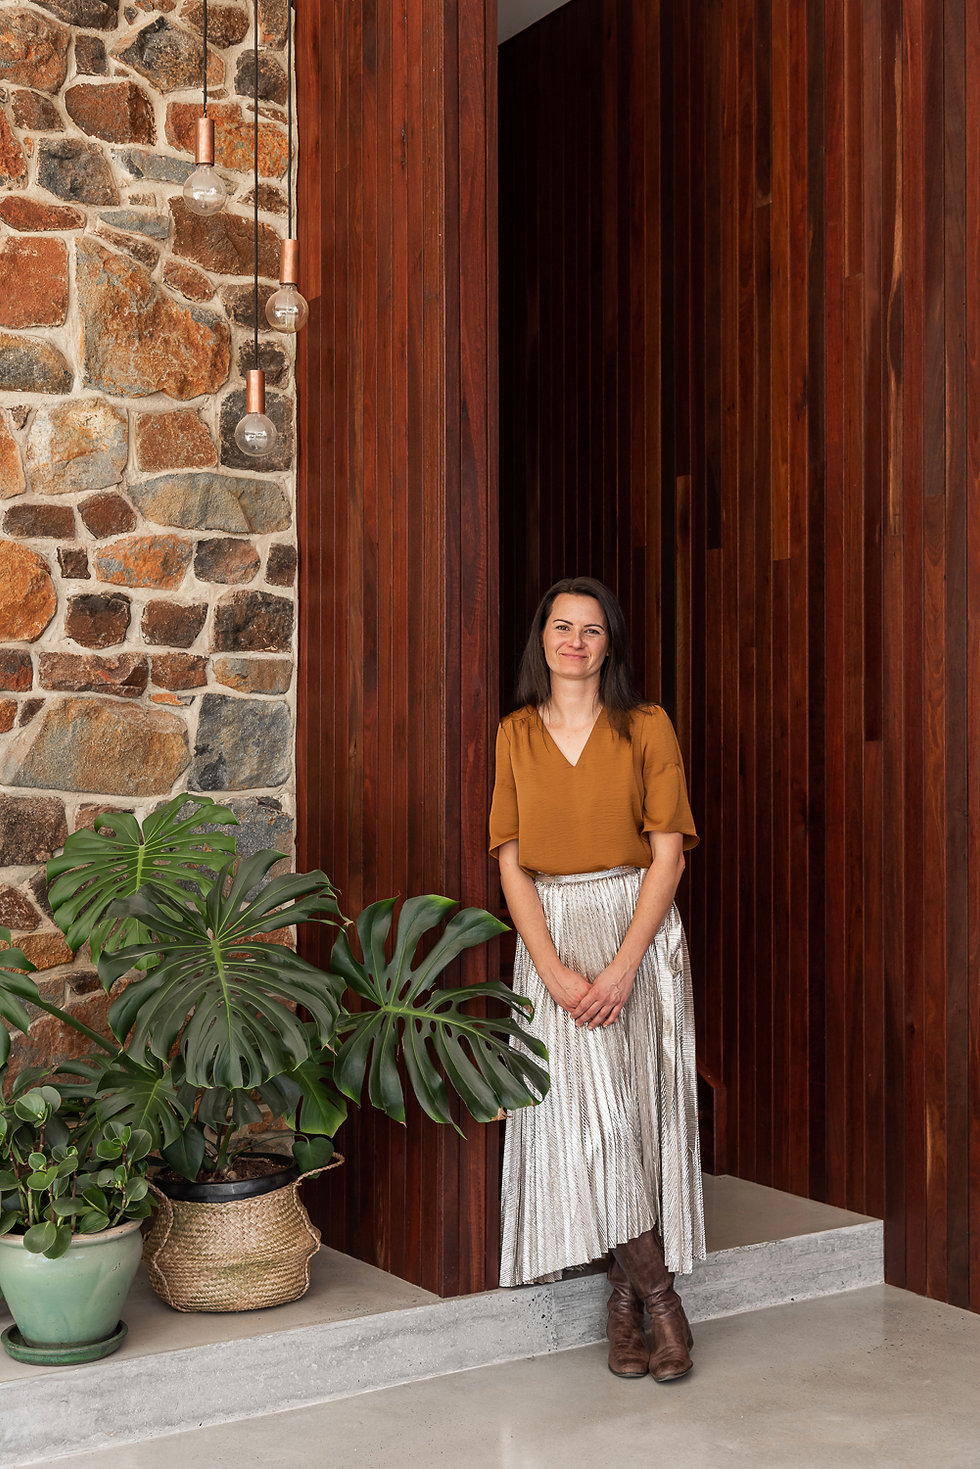 Alice Ostrowski, Director and Wellness Architect, AO Architects, standing by Jarrah cladding to lounge and curved entry wall - Nyaania Creek Darlington Residence